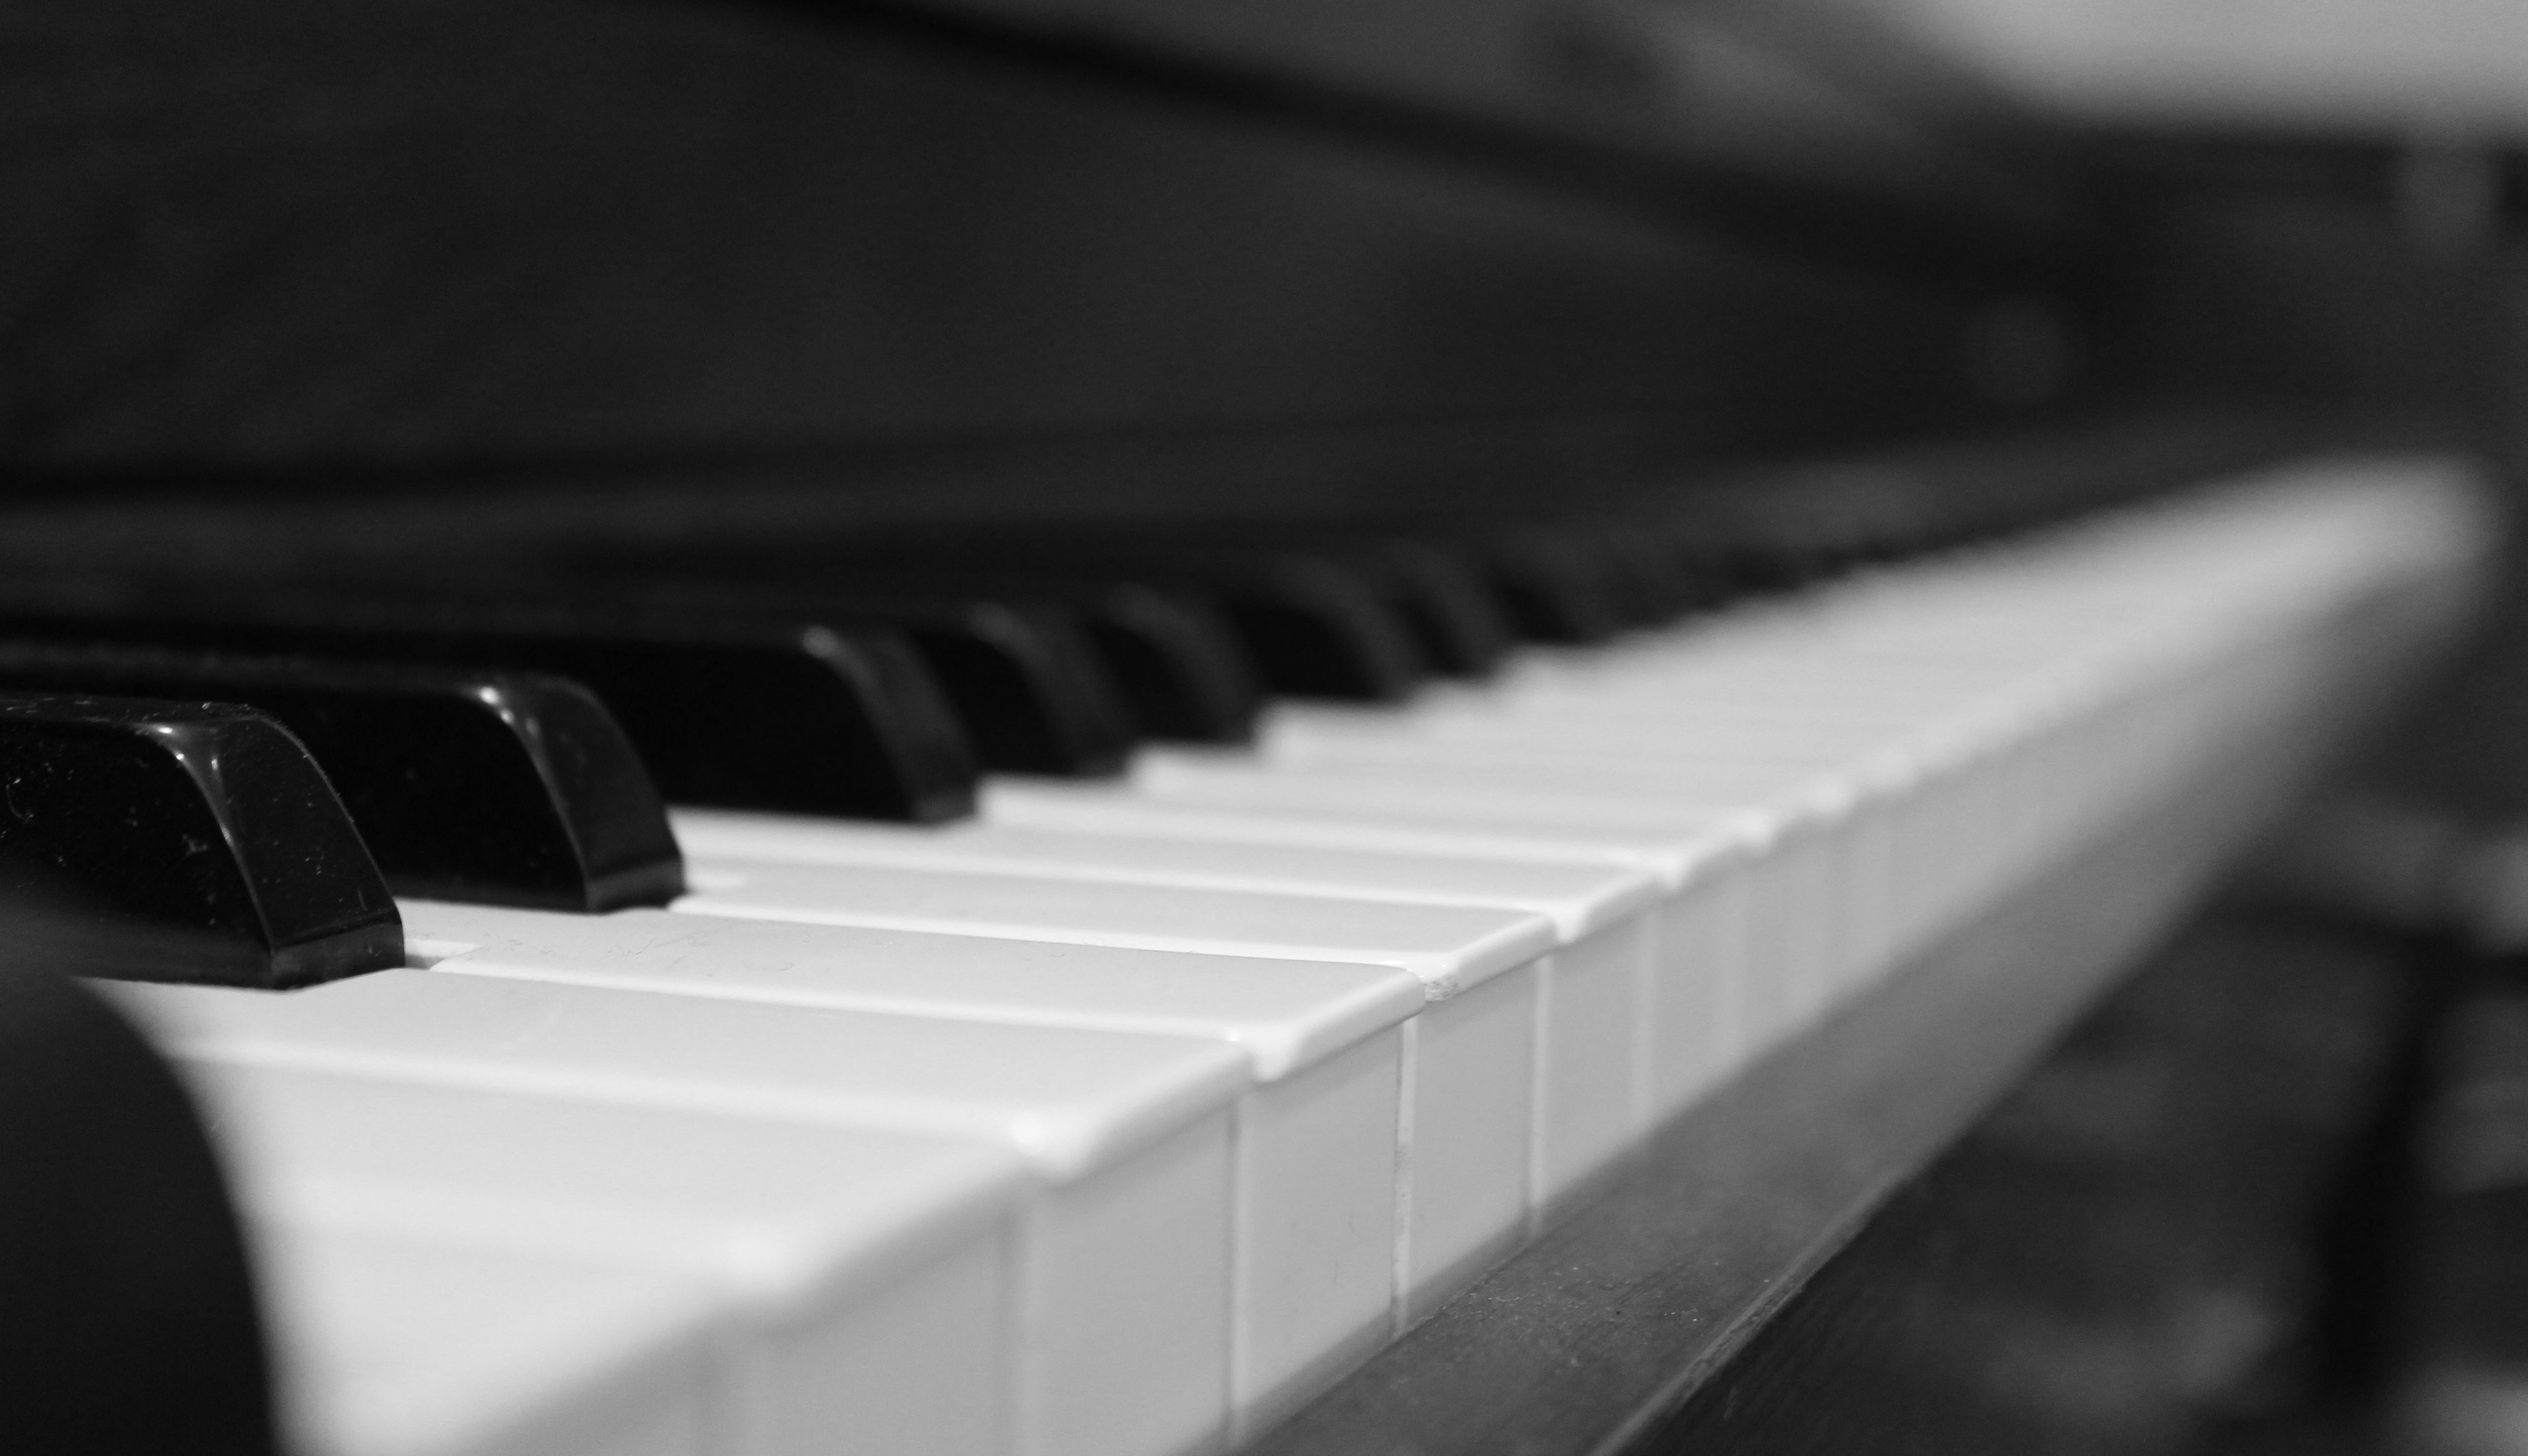 black and white piano photo by rebeccacr on deviantart